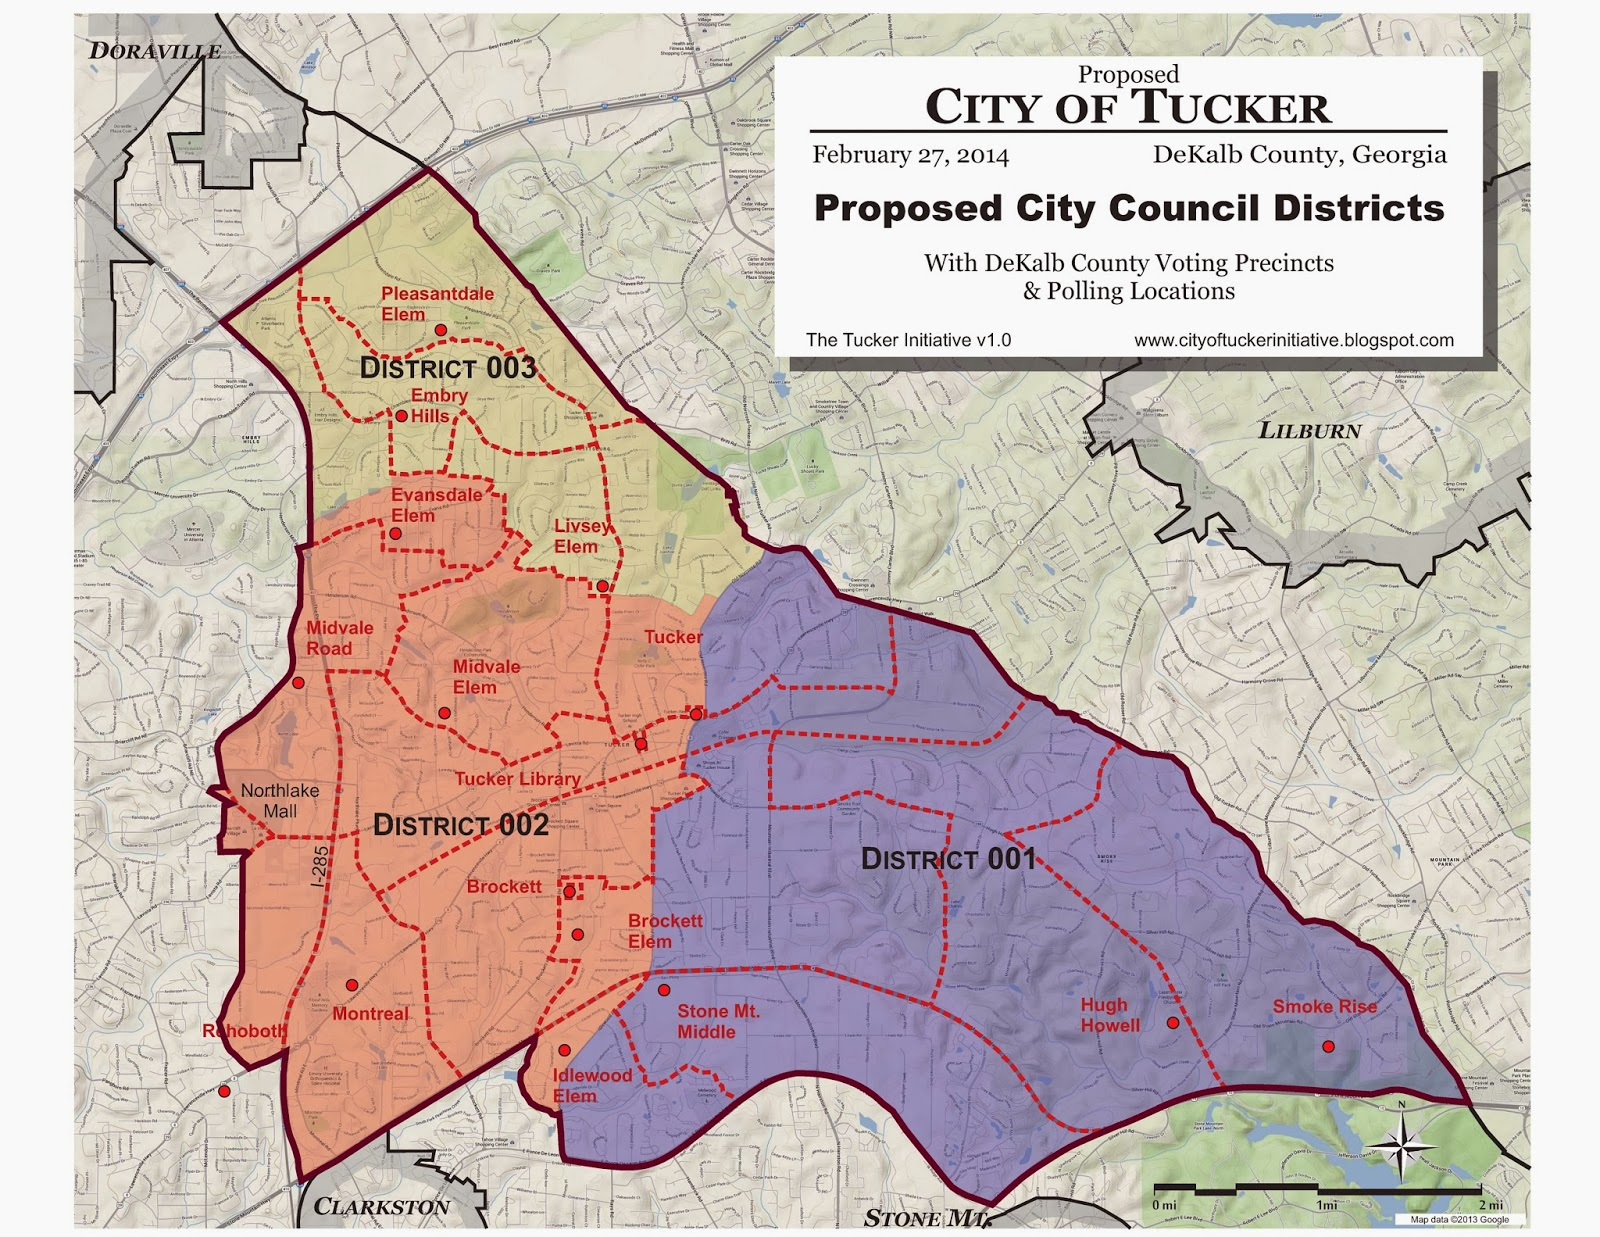 The City Of Tucker Initiative The Proposed New City Of Tucker - Georgia map 2014